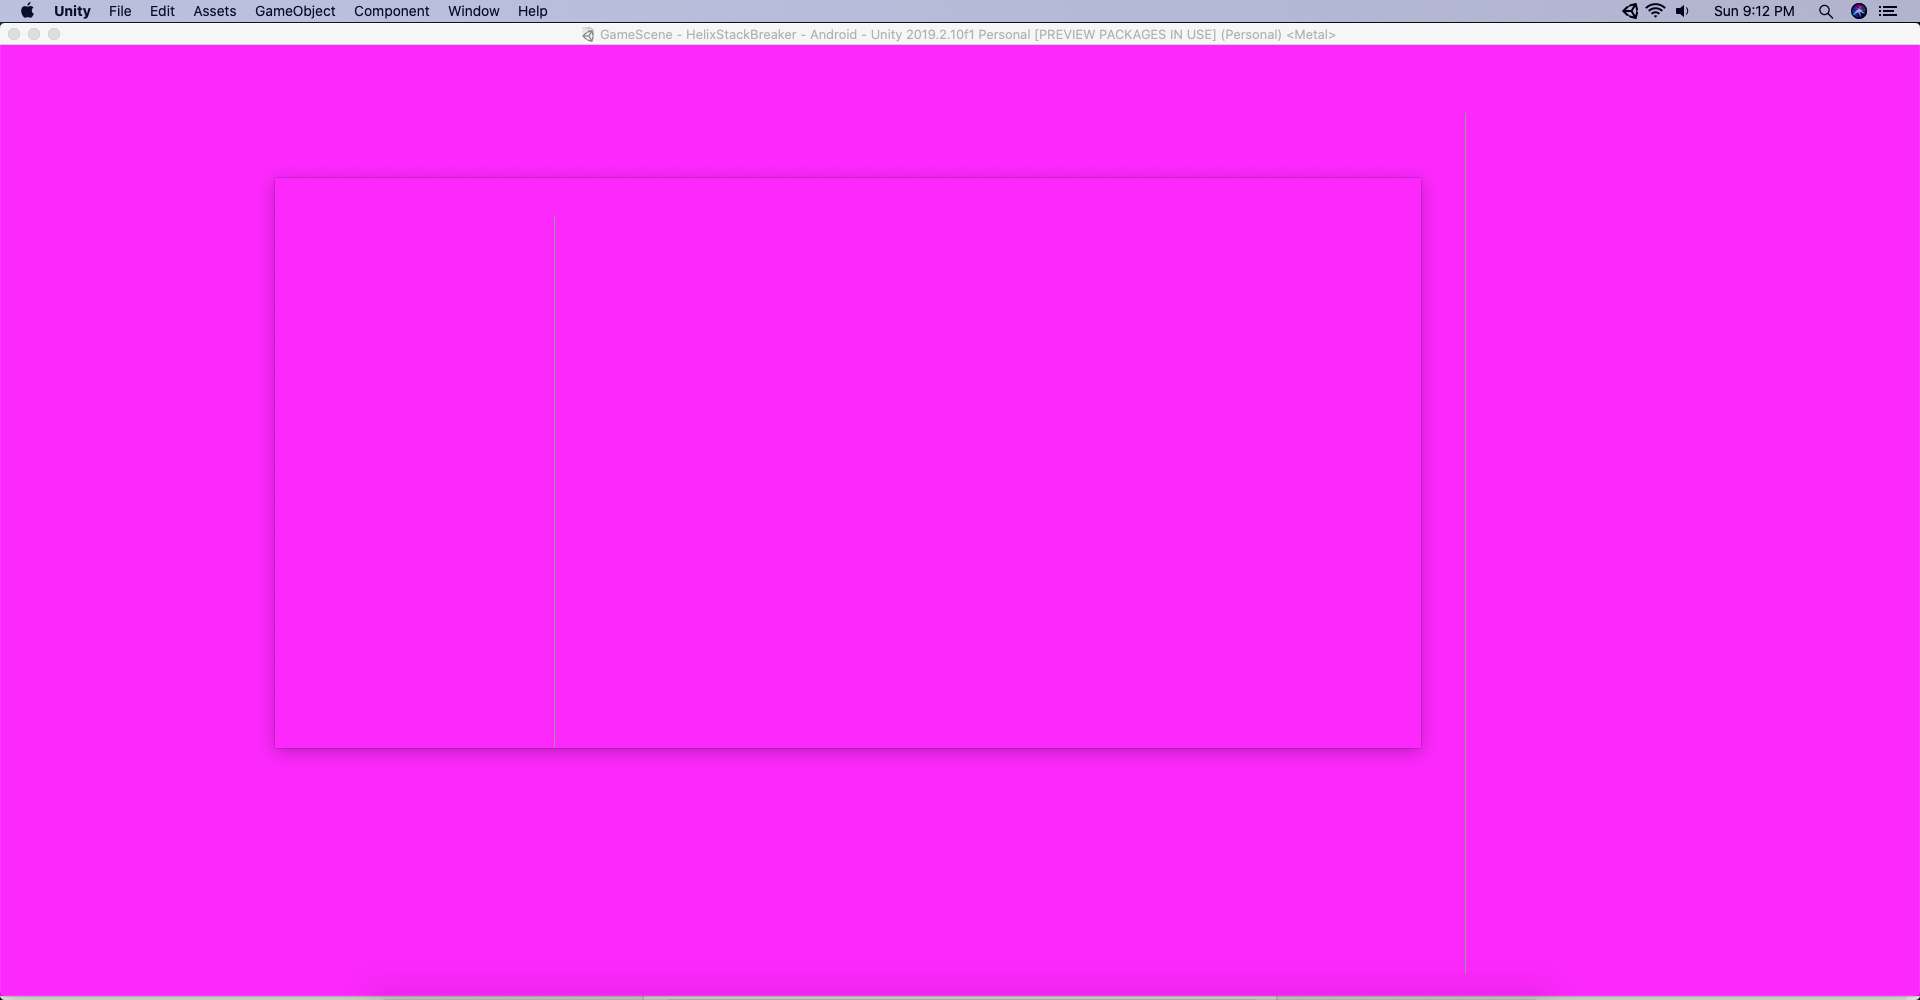 unity_editor_pink.png